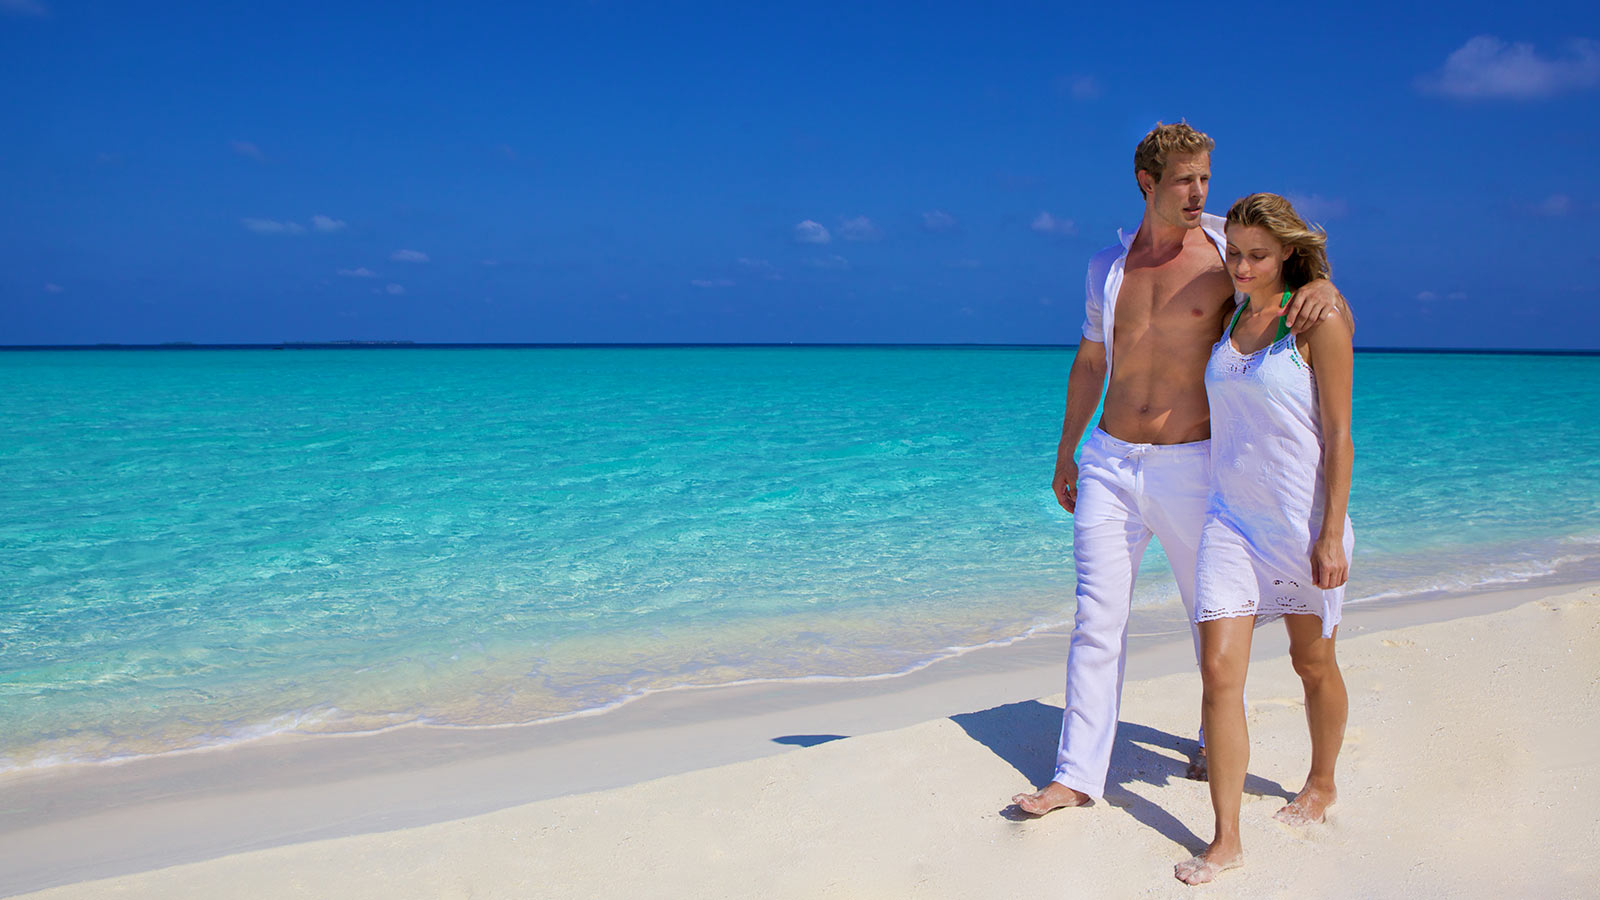 kuredu-couple-walking-on-the-beach-in-white-1600x900